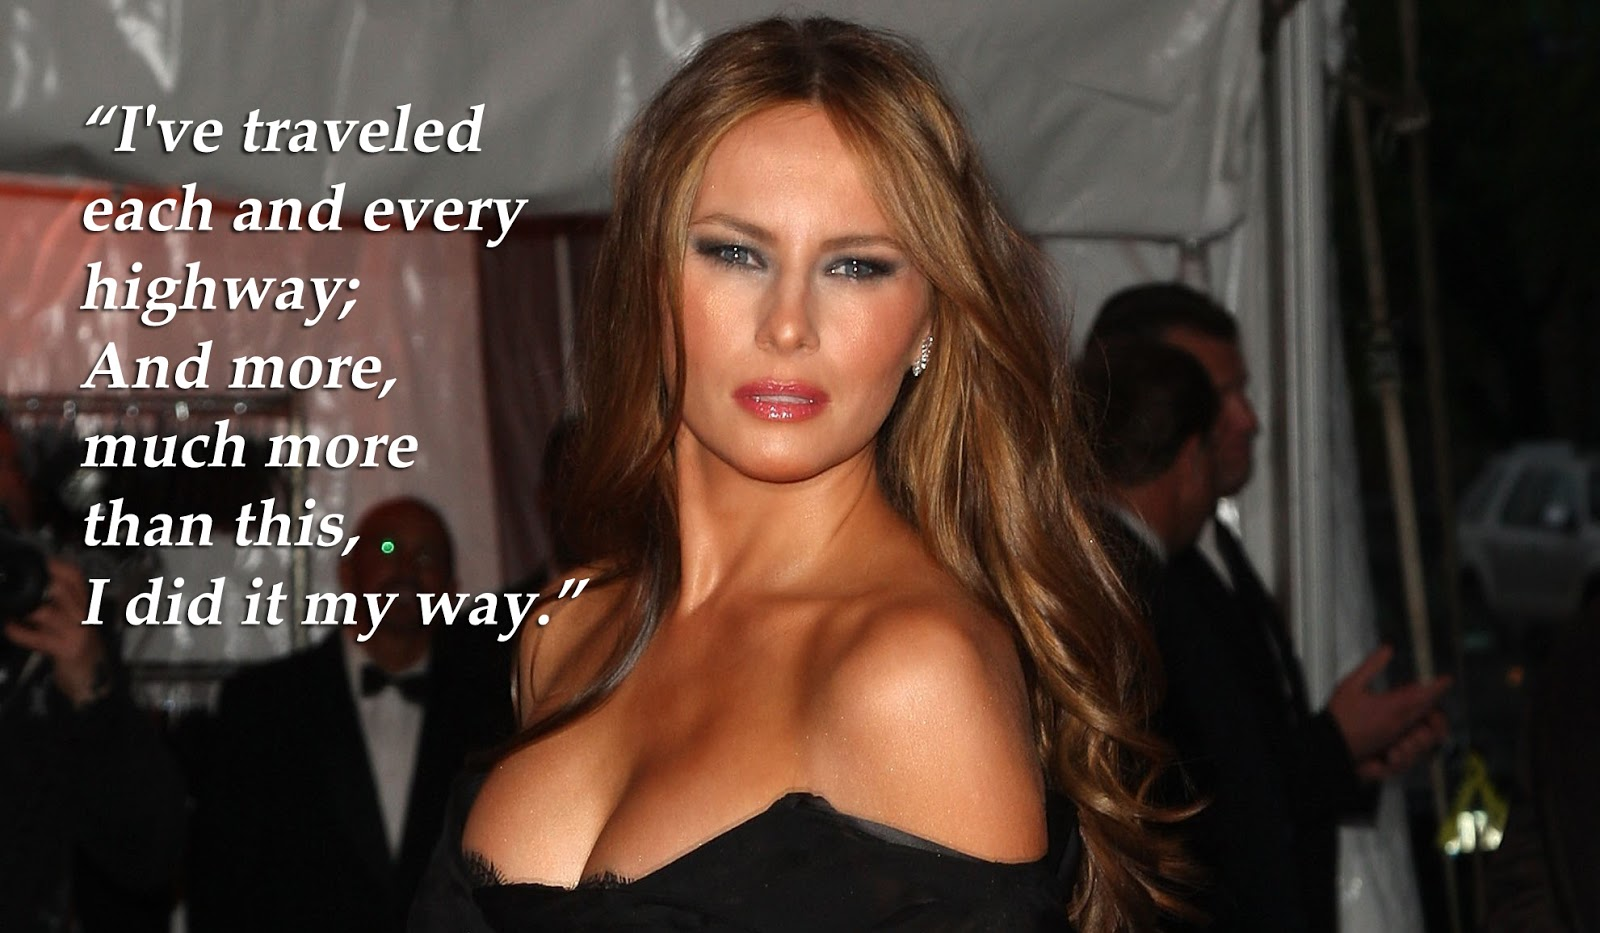 Lebanon blogs - Famous quotes by Melania Trump